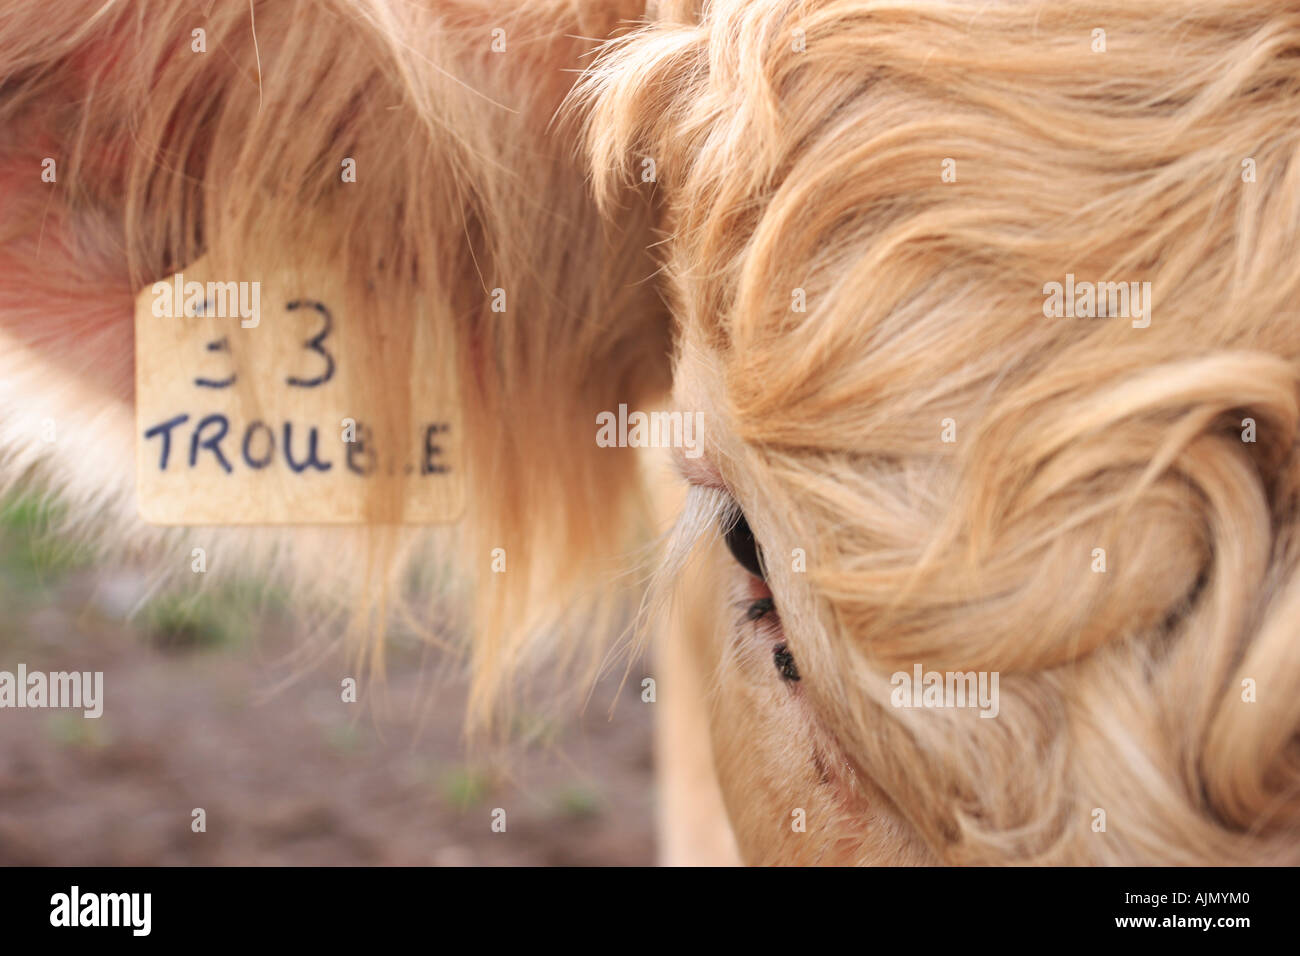 Closeup of a bull named Trouble. Stock Photo